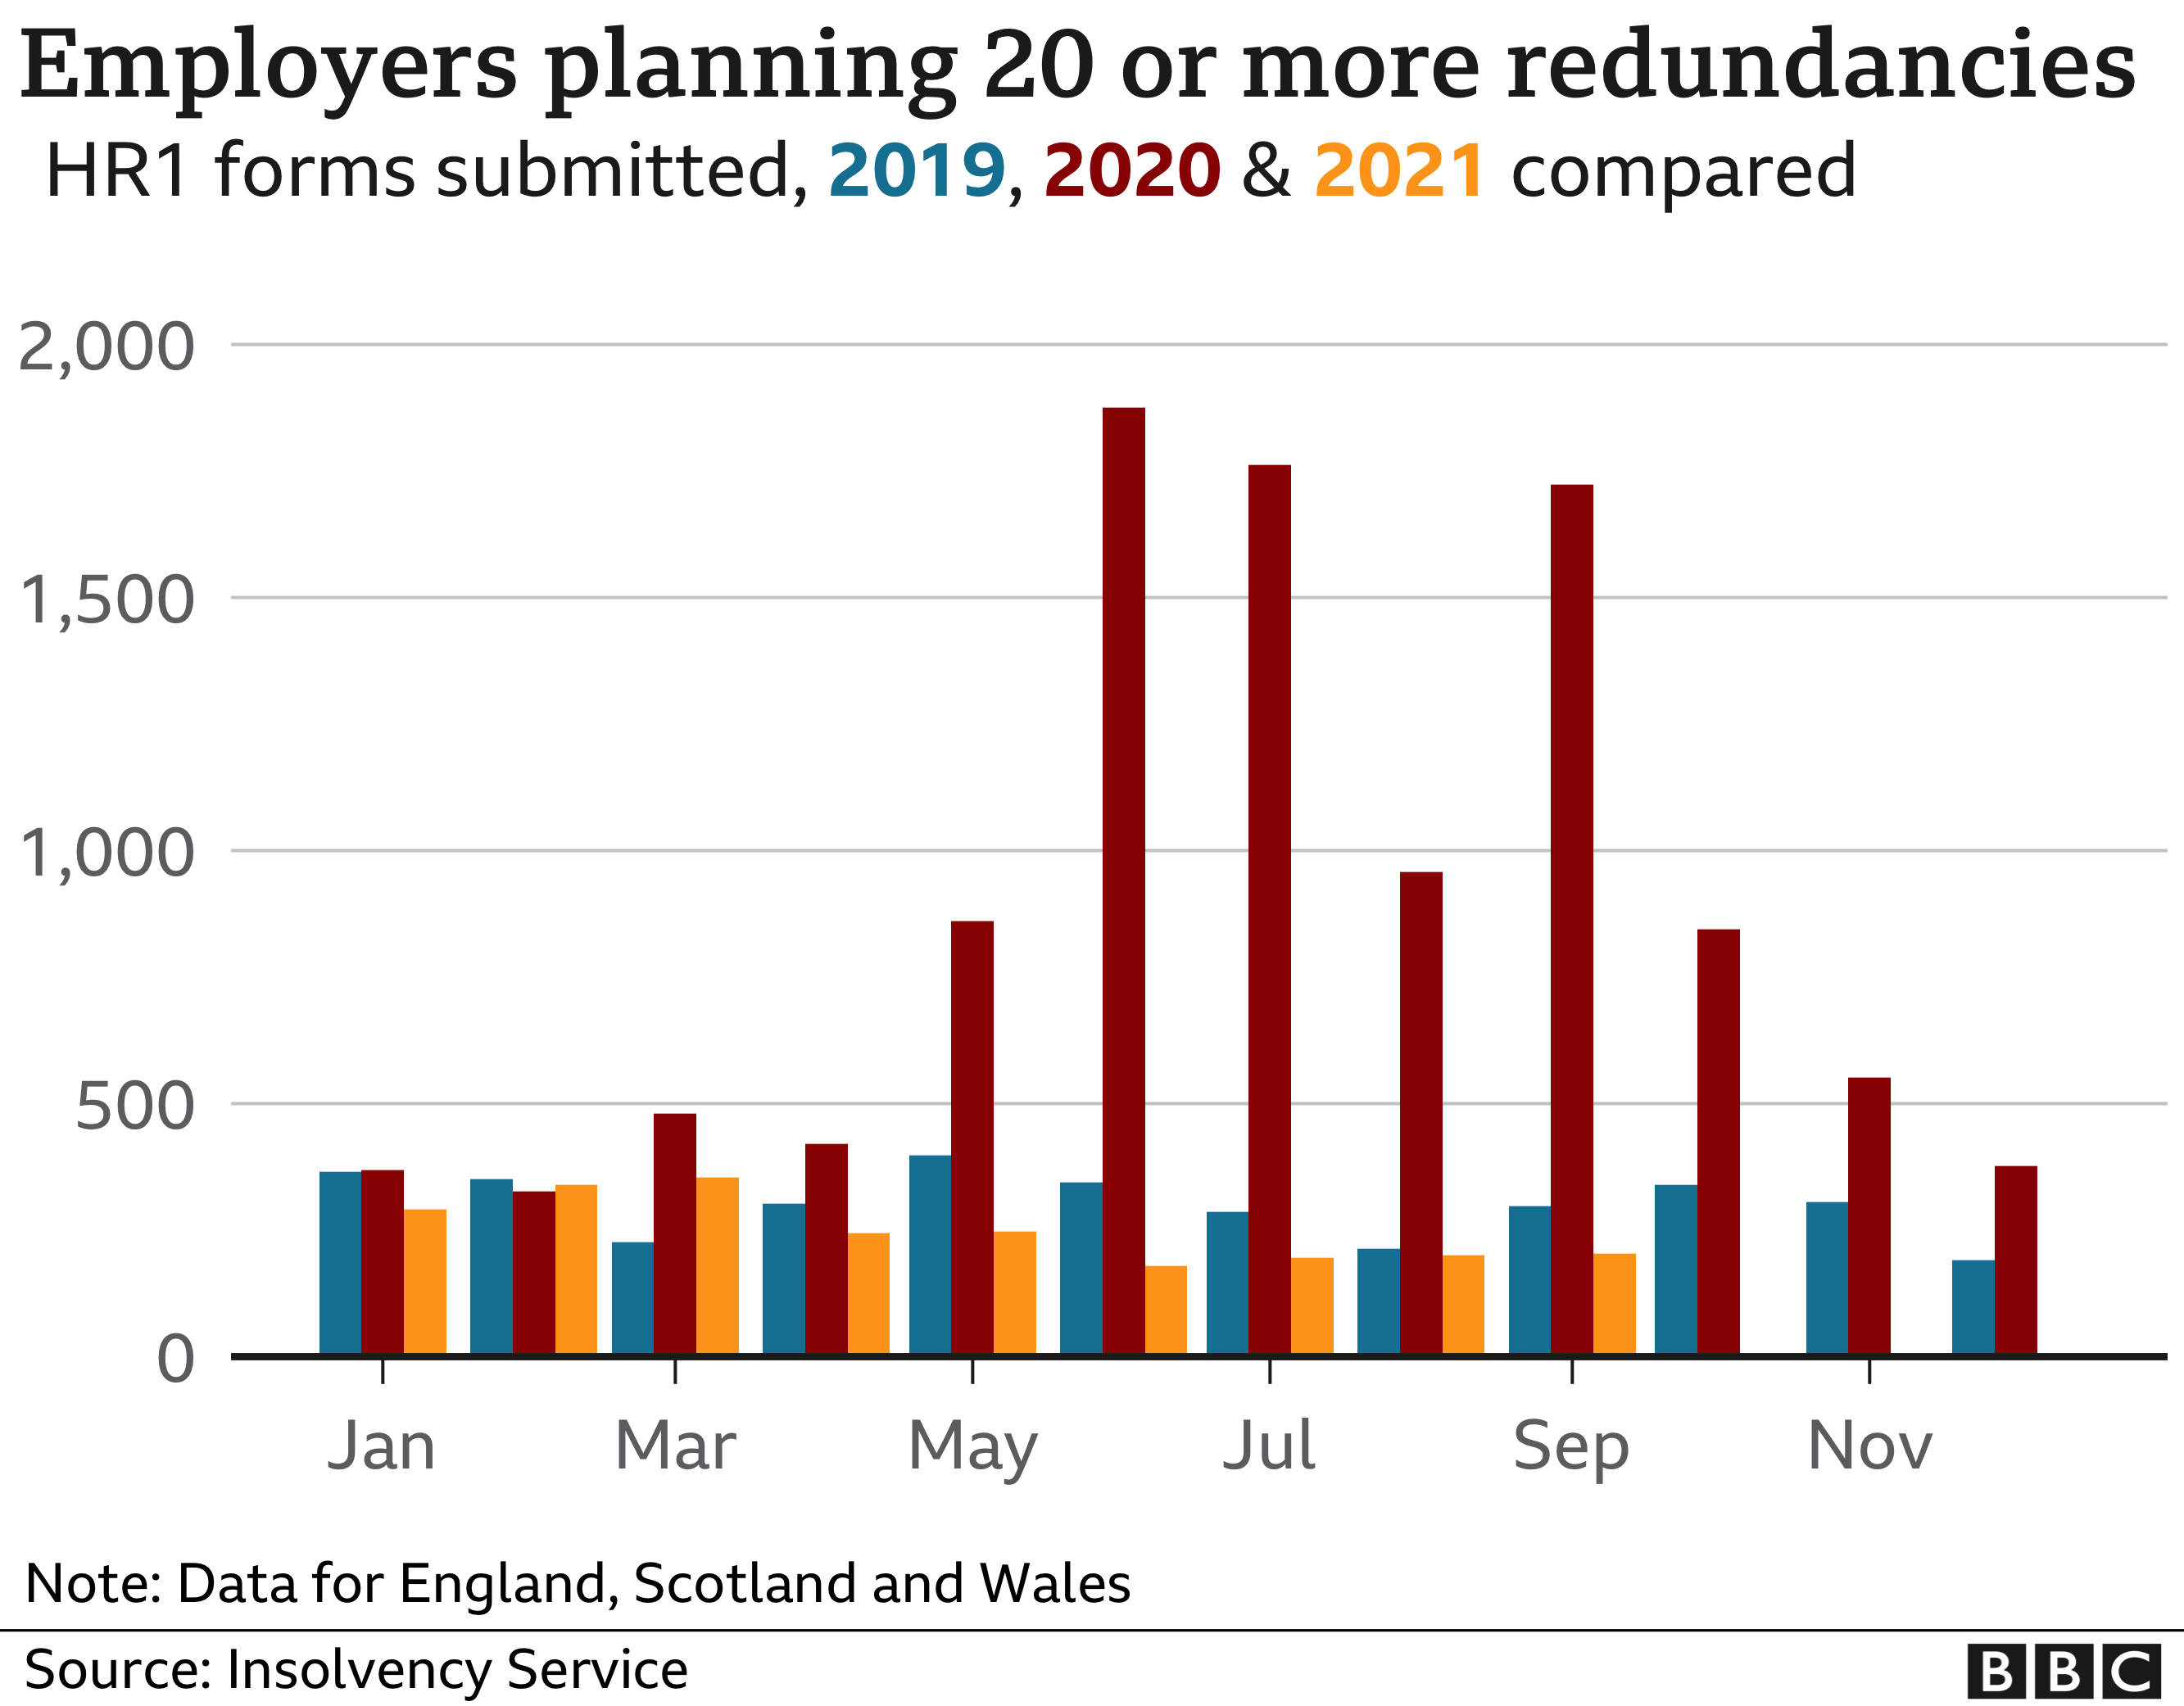 Graph comparing redundancy notifications for 2019, 2020 and 2021